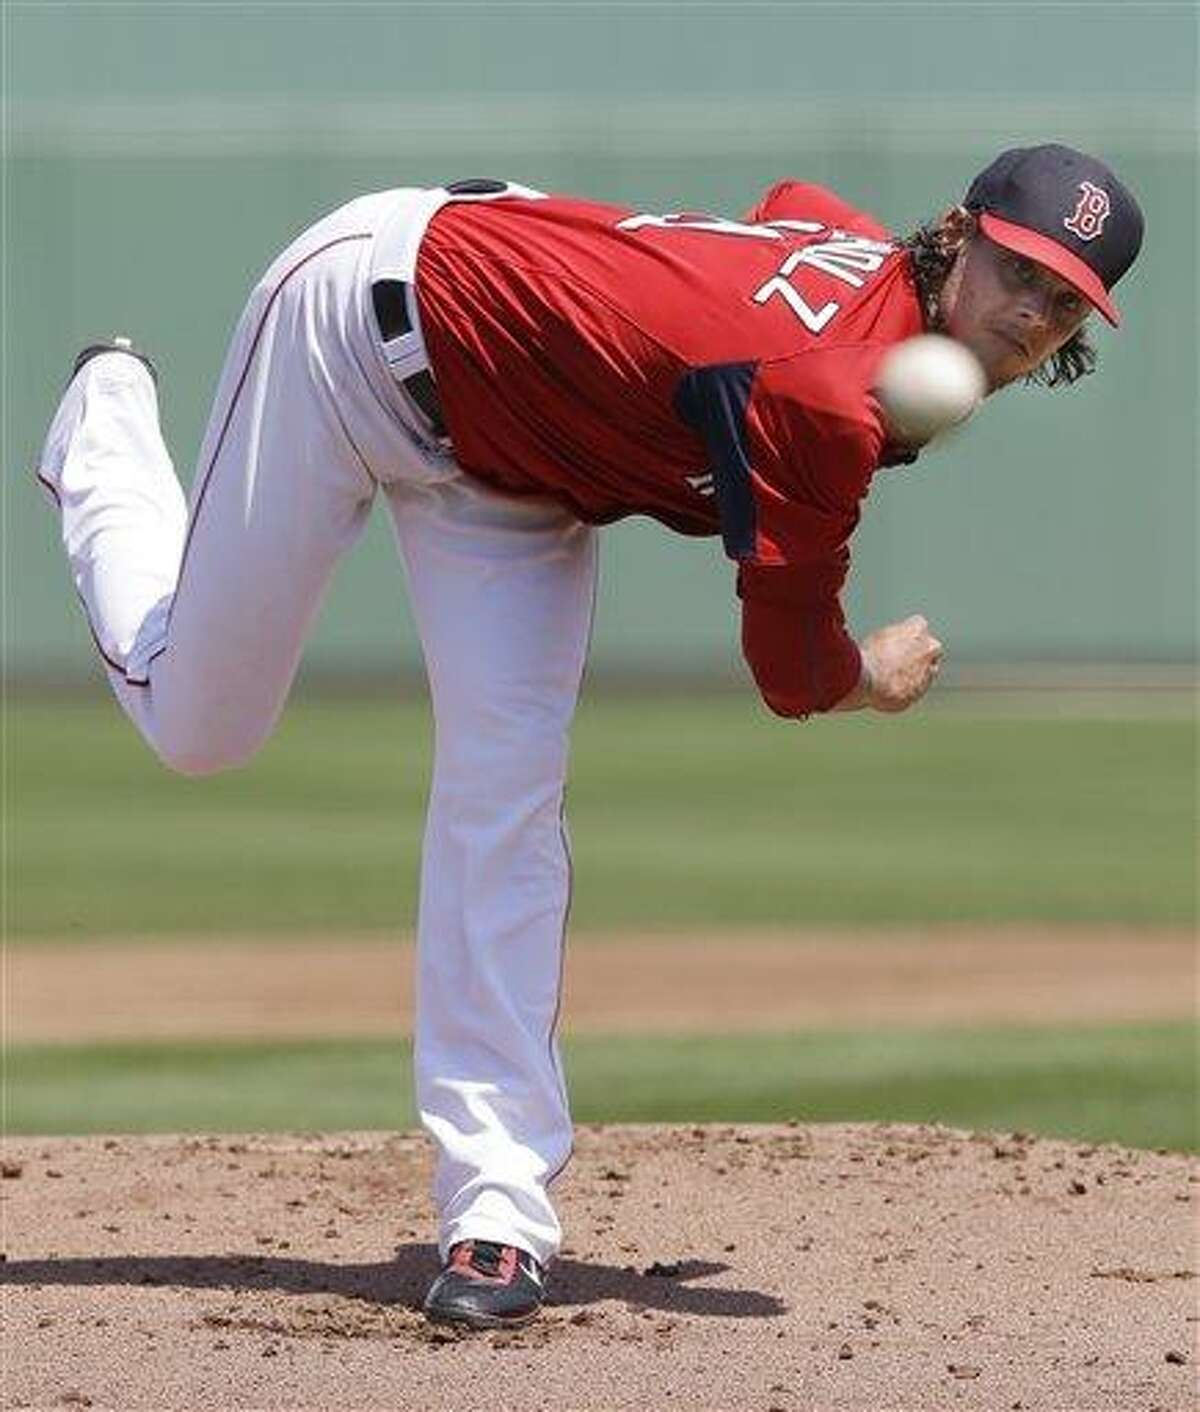 Boston Red Sox starting pitcher Clay Buchholz delivers to the Pittsburgh Pirates in the first inning of an exhibition spring training baseball game in Fort Myers, Fla., Saturday, March 23, 2013. (AP Photo/Elise Amendola)